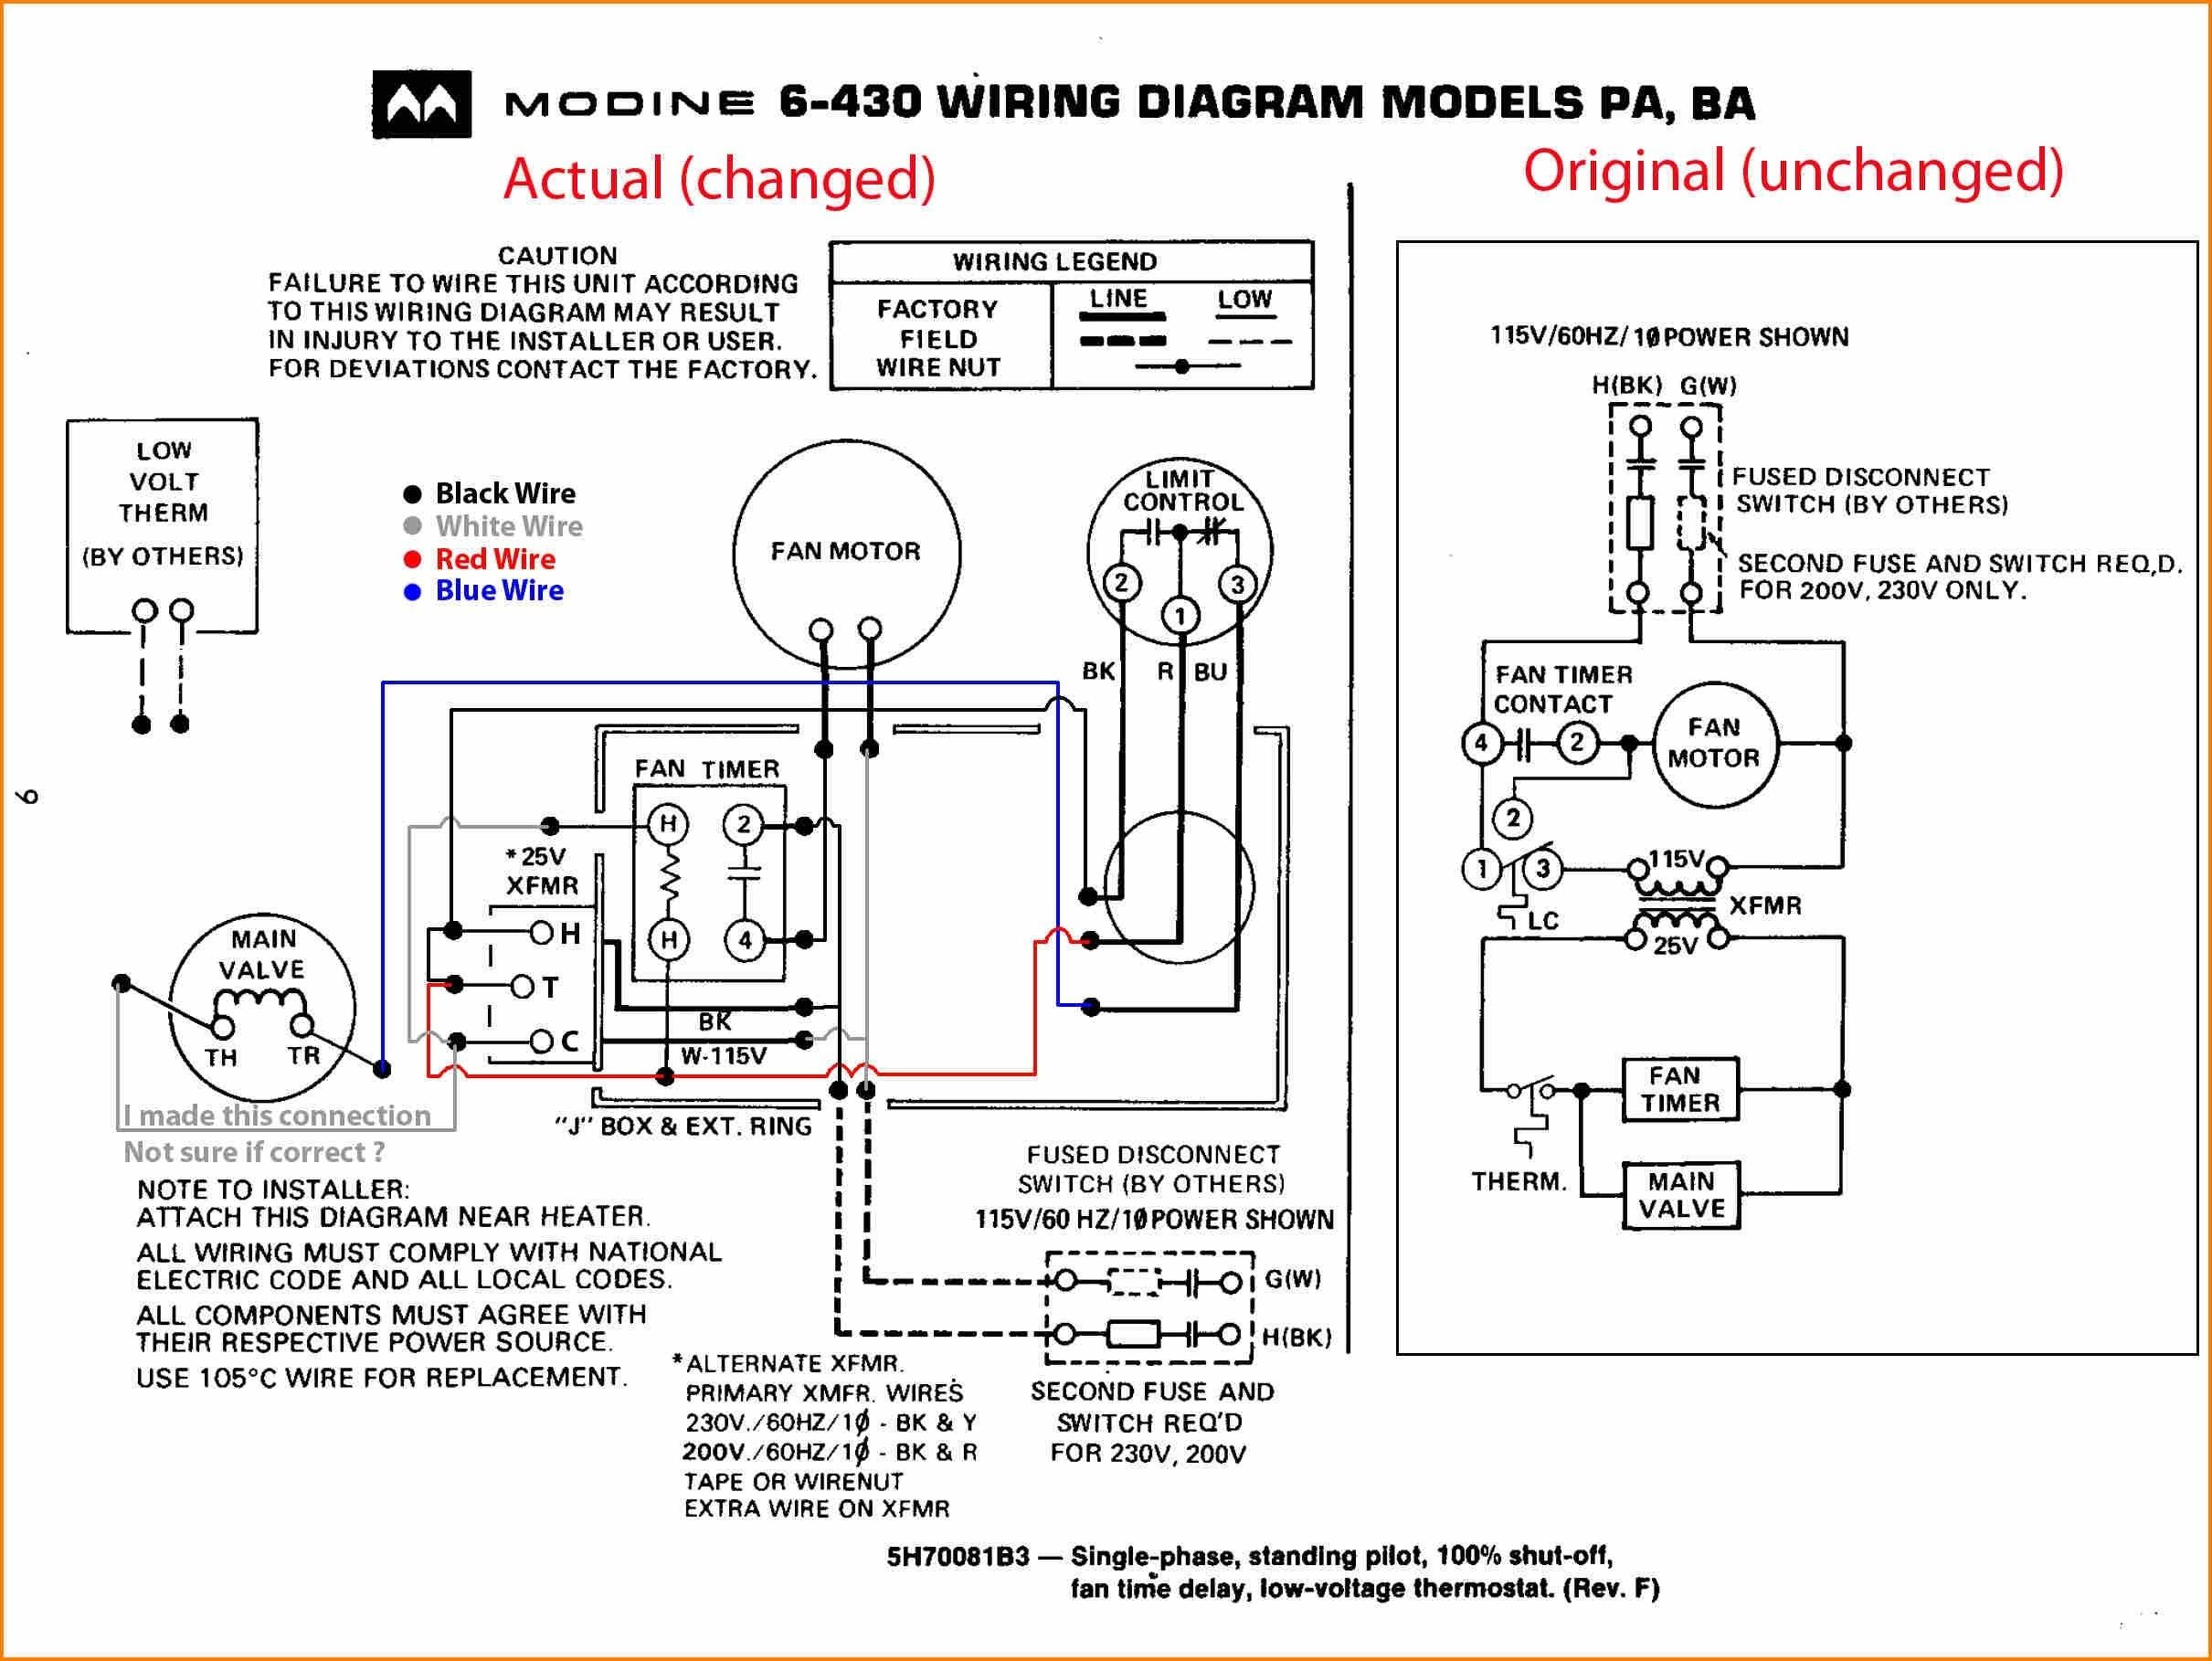 New Wiring Diagram for Ge Electric Motor #diagram #diagramsample  #diagramtemplate #wiringdiagram #diagramch… | Thermostat wiring, Electrical  wiring diagram, DiagramPinterest